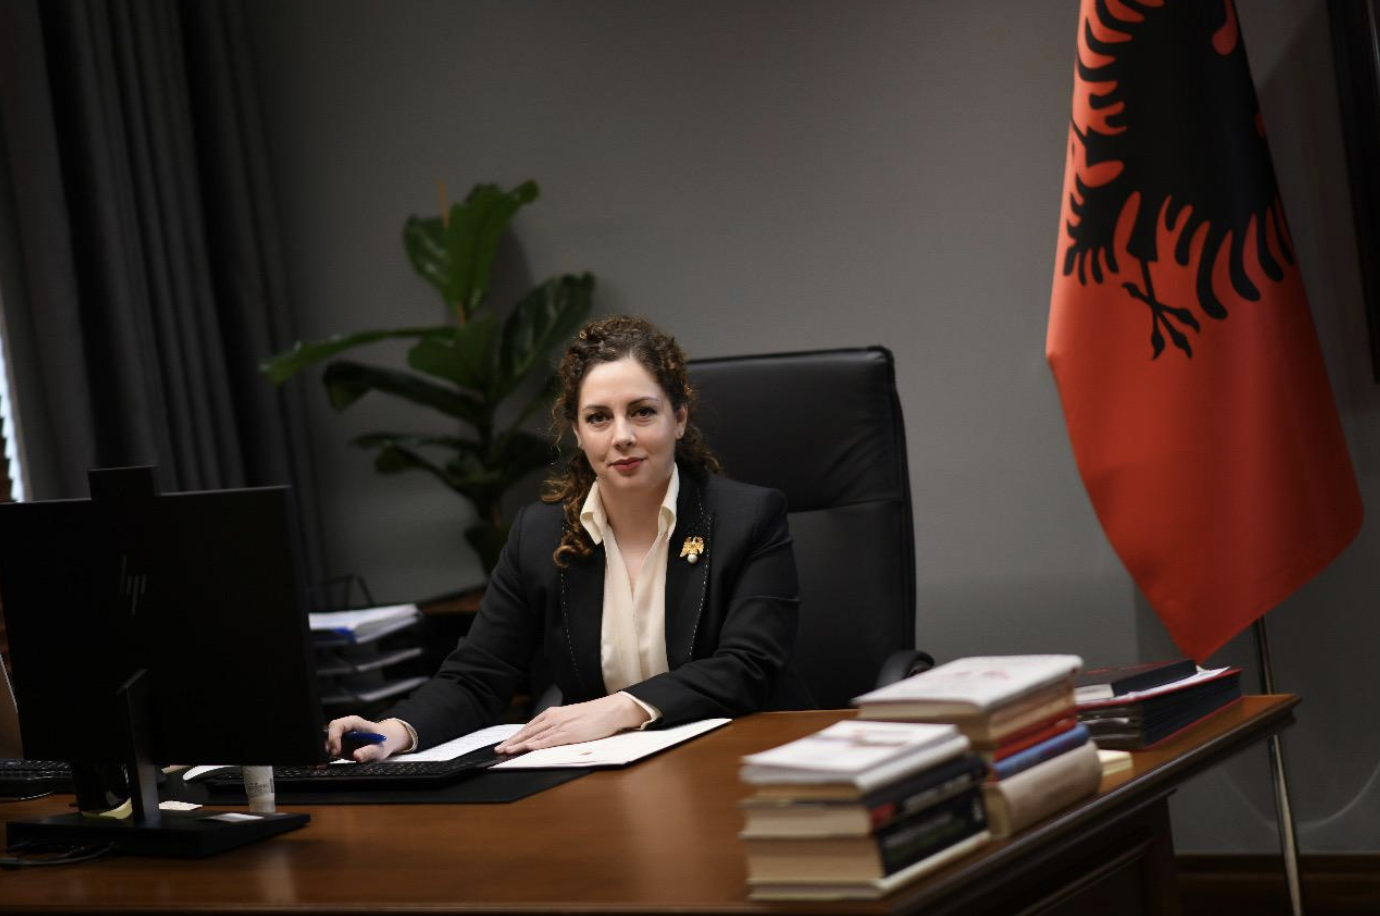 Albania: Xhaçka and Peleshi support NATO's withdrawal from Afghanistan